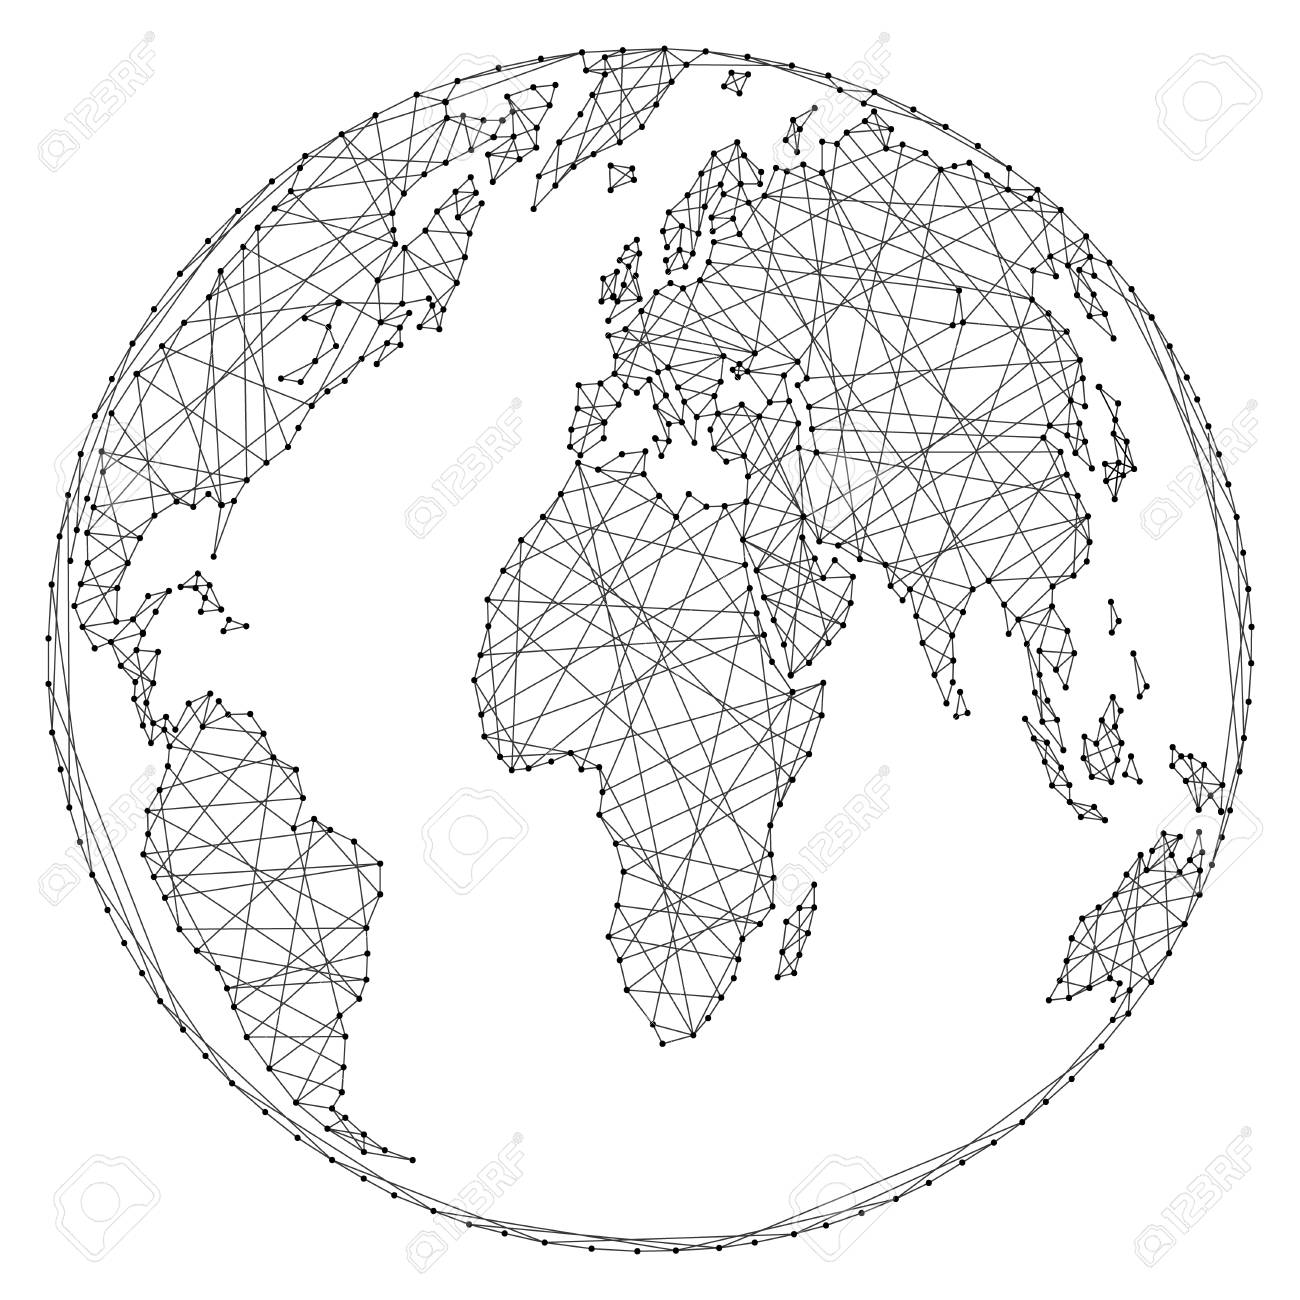 Abstract world map on a globe ball of polygonal lines and dots abstract world map on a globe ball of polygonal lines and dots on a white background gumiabroncs Images